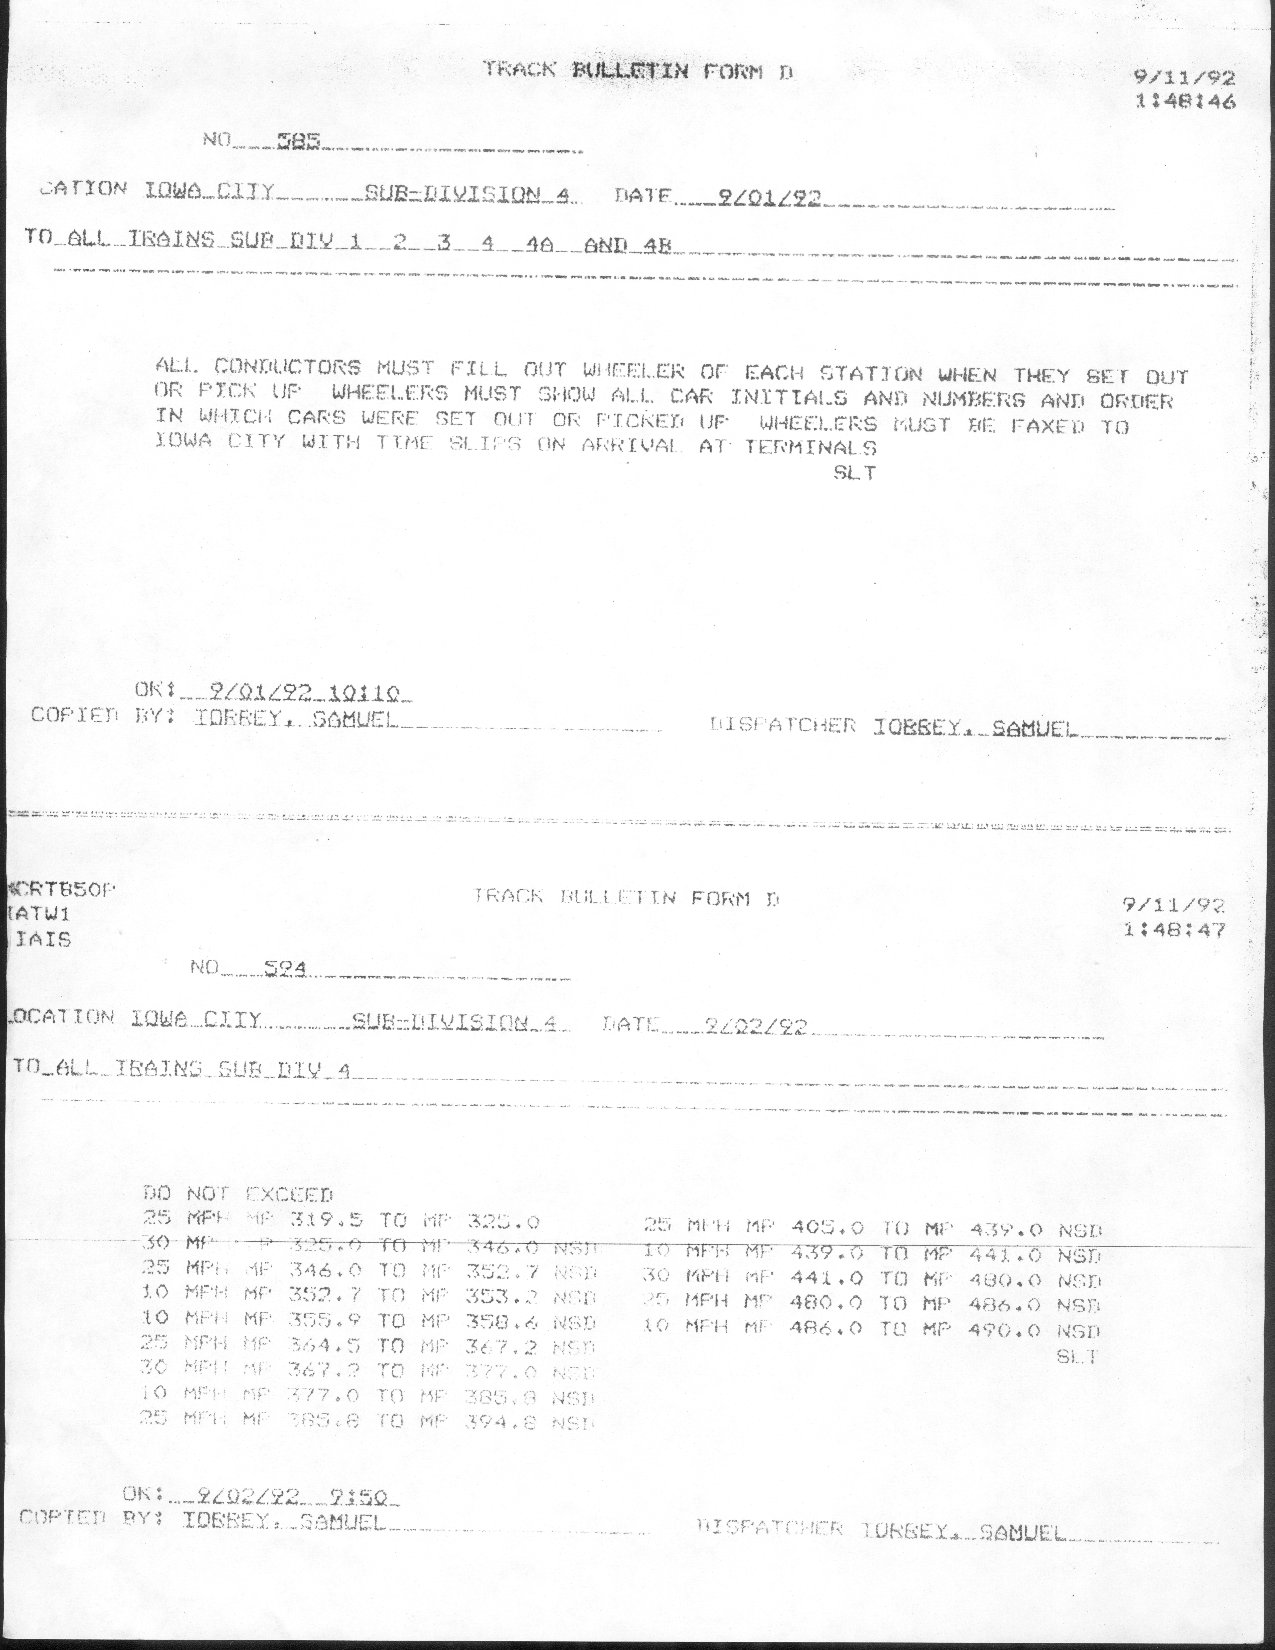 Track Bulletin (fax) 11-sep-1992